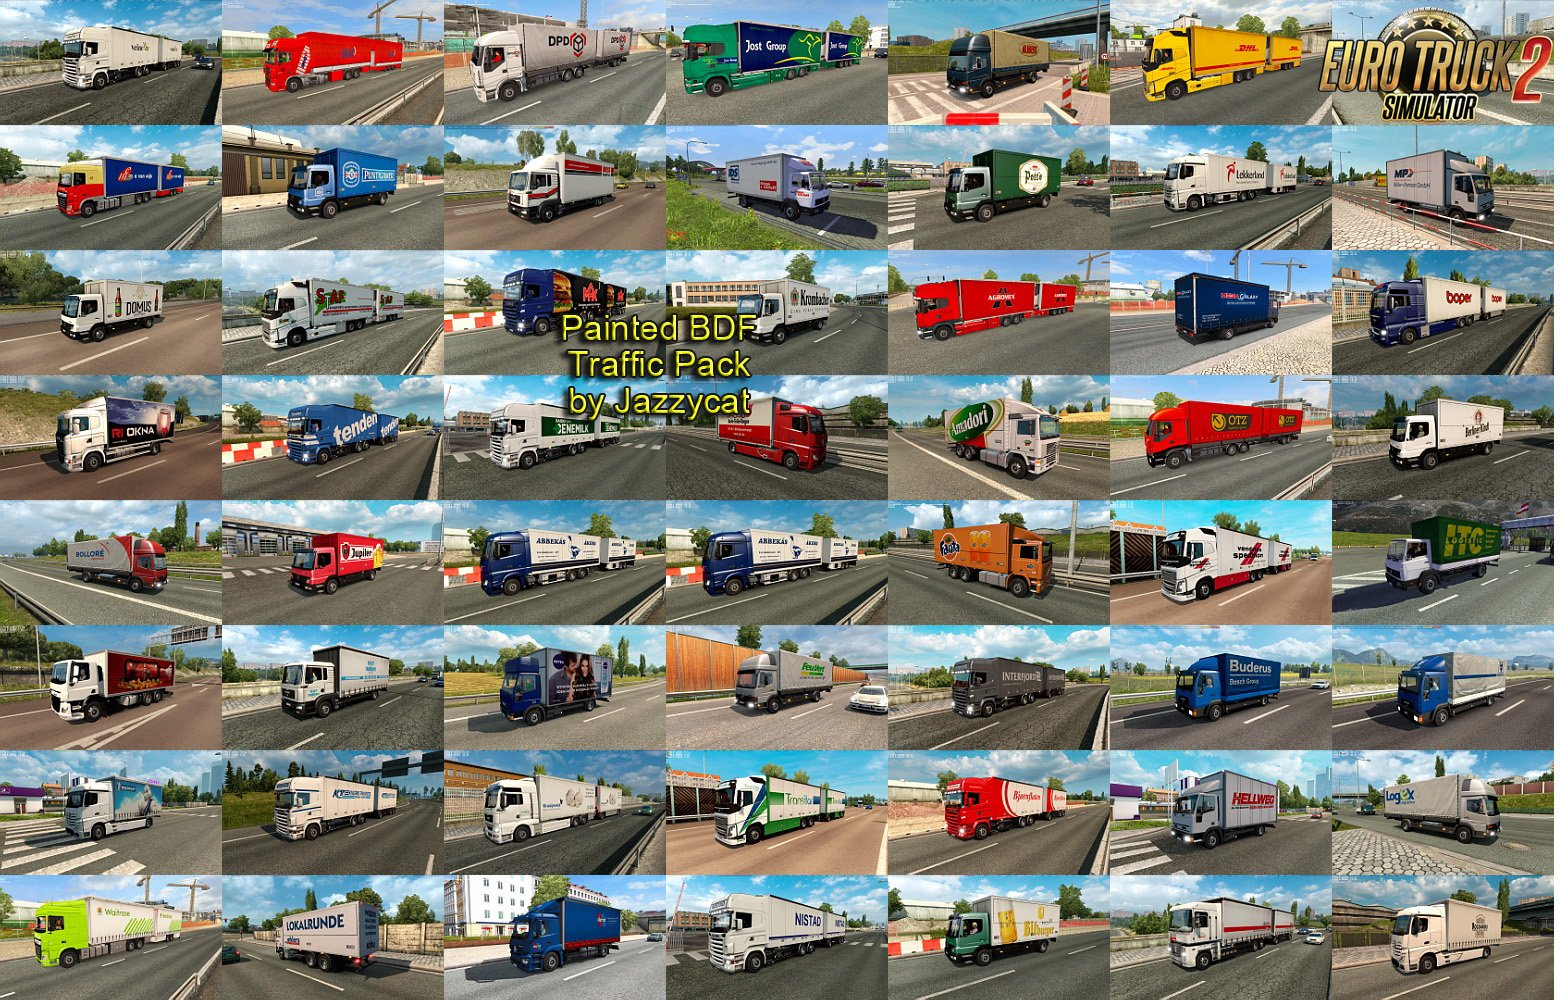 Painted BDF Traffic Pack v3.7 by Jazzycat